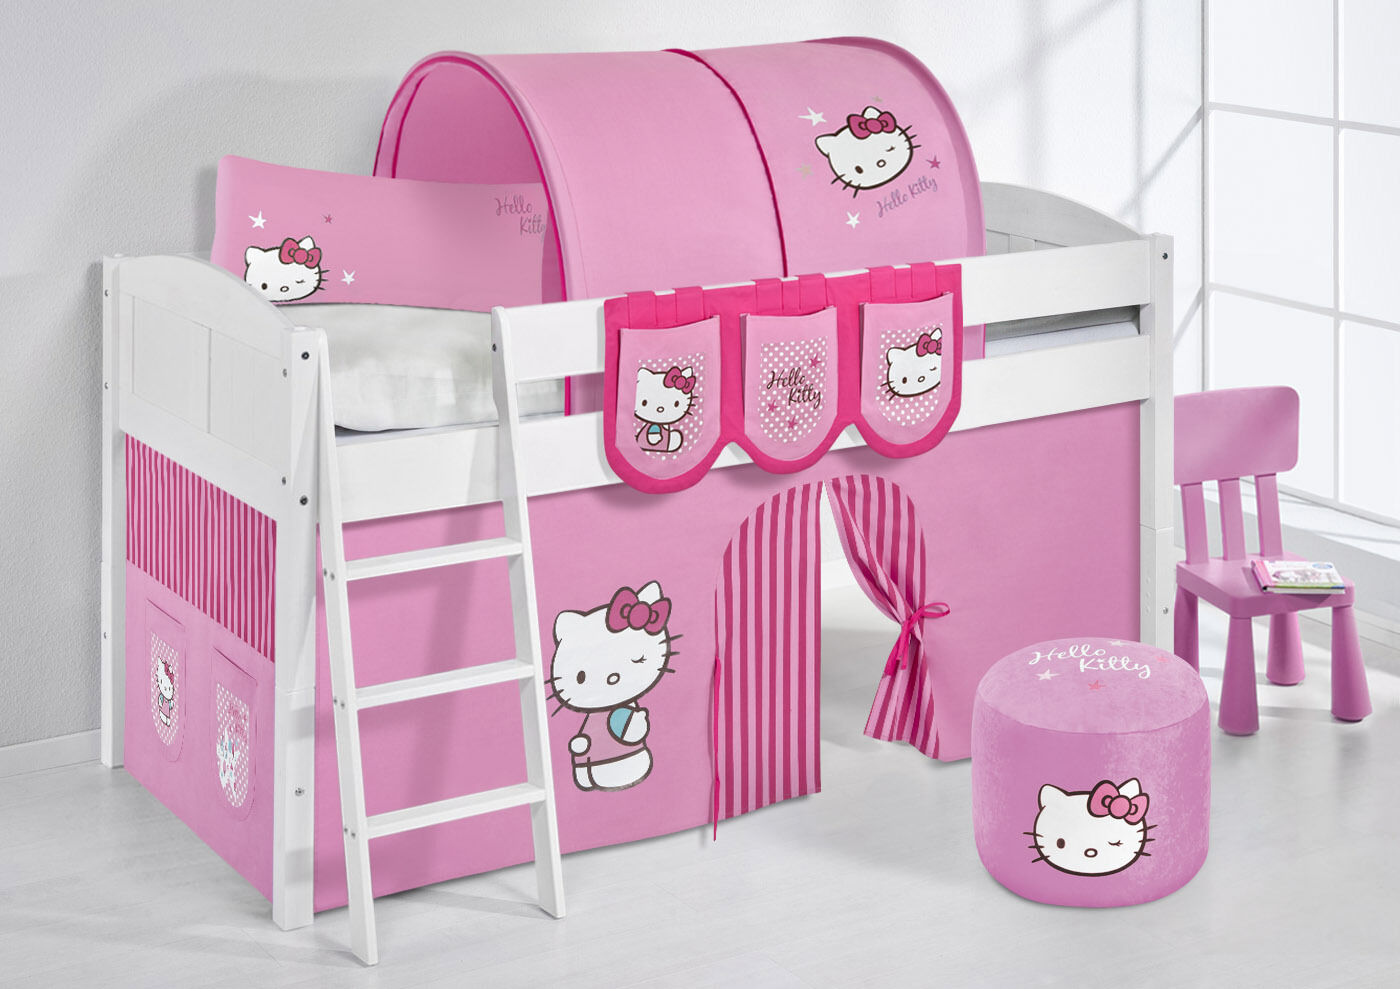 Spielbett surelevé lit enfant 4106 LILOKIDS Hello Kitty rose